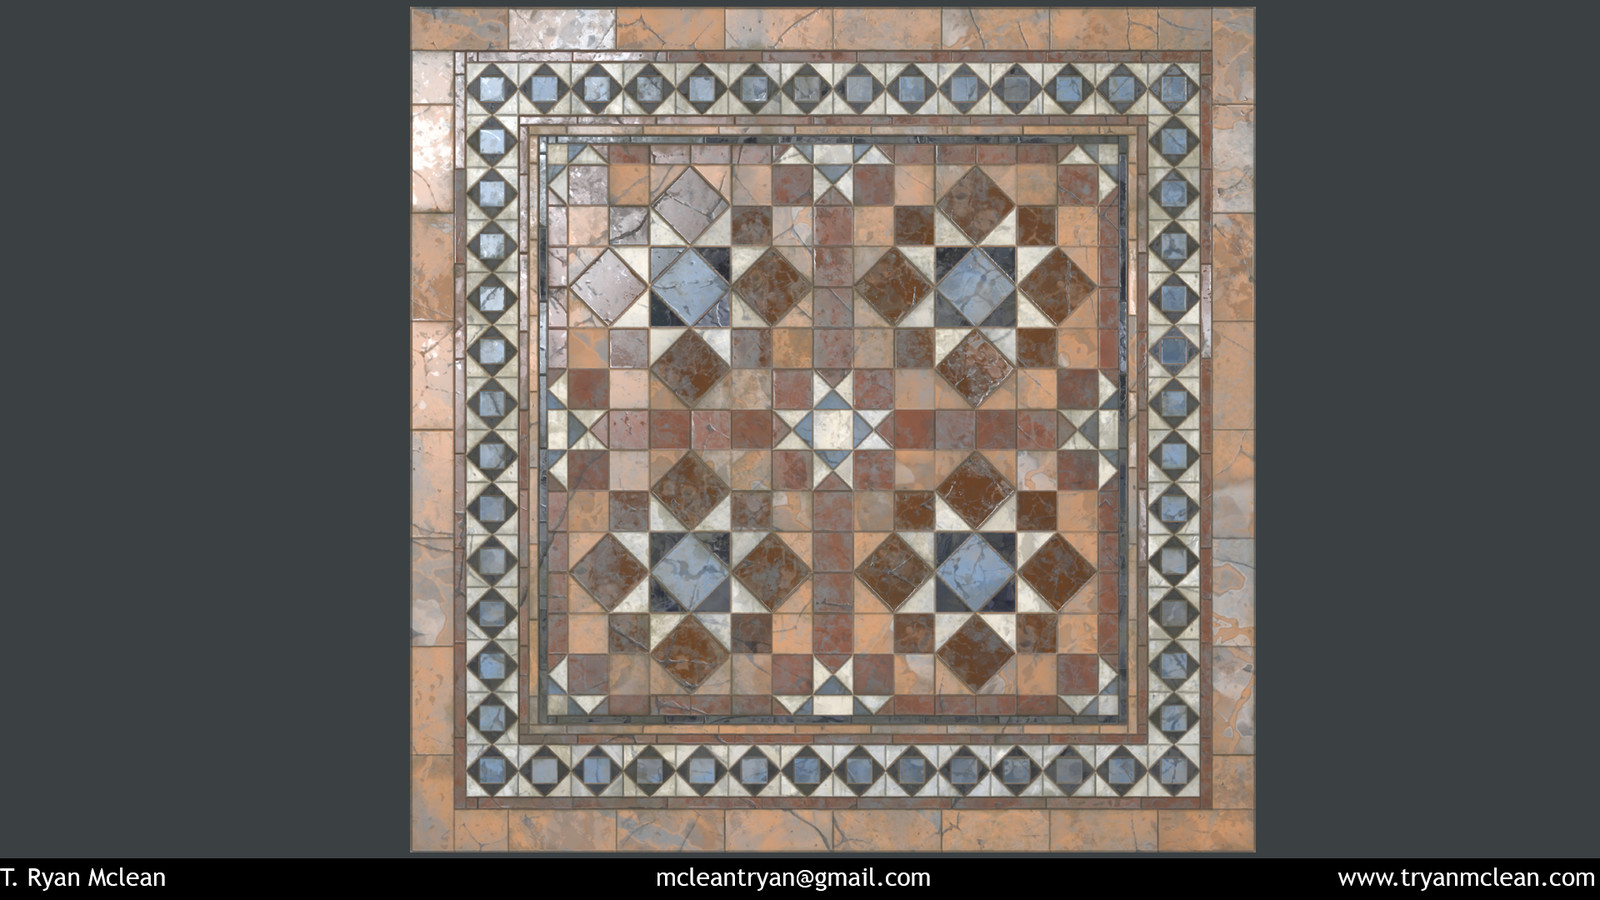 Marble Floor. 100 % Substance Designer. Rendered in Marmoset Toolbag.